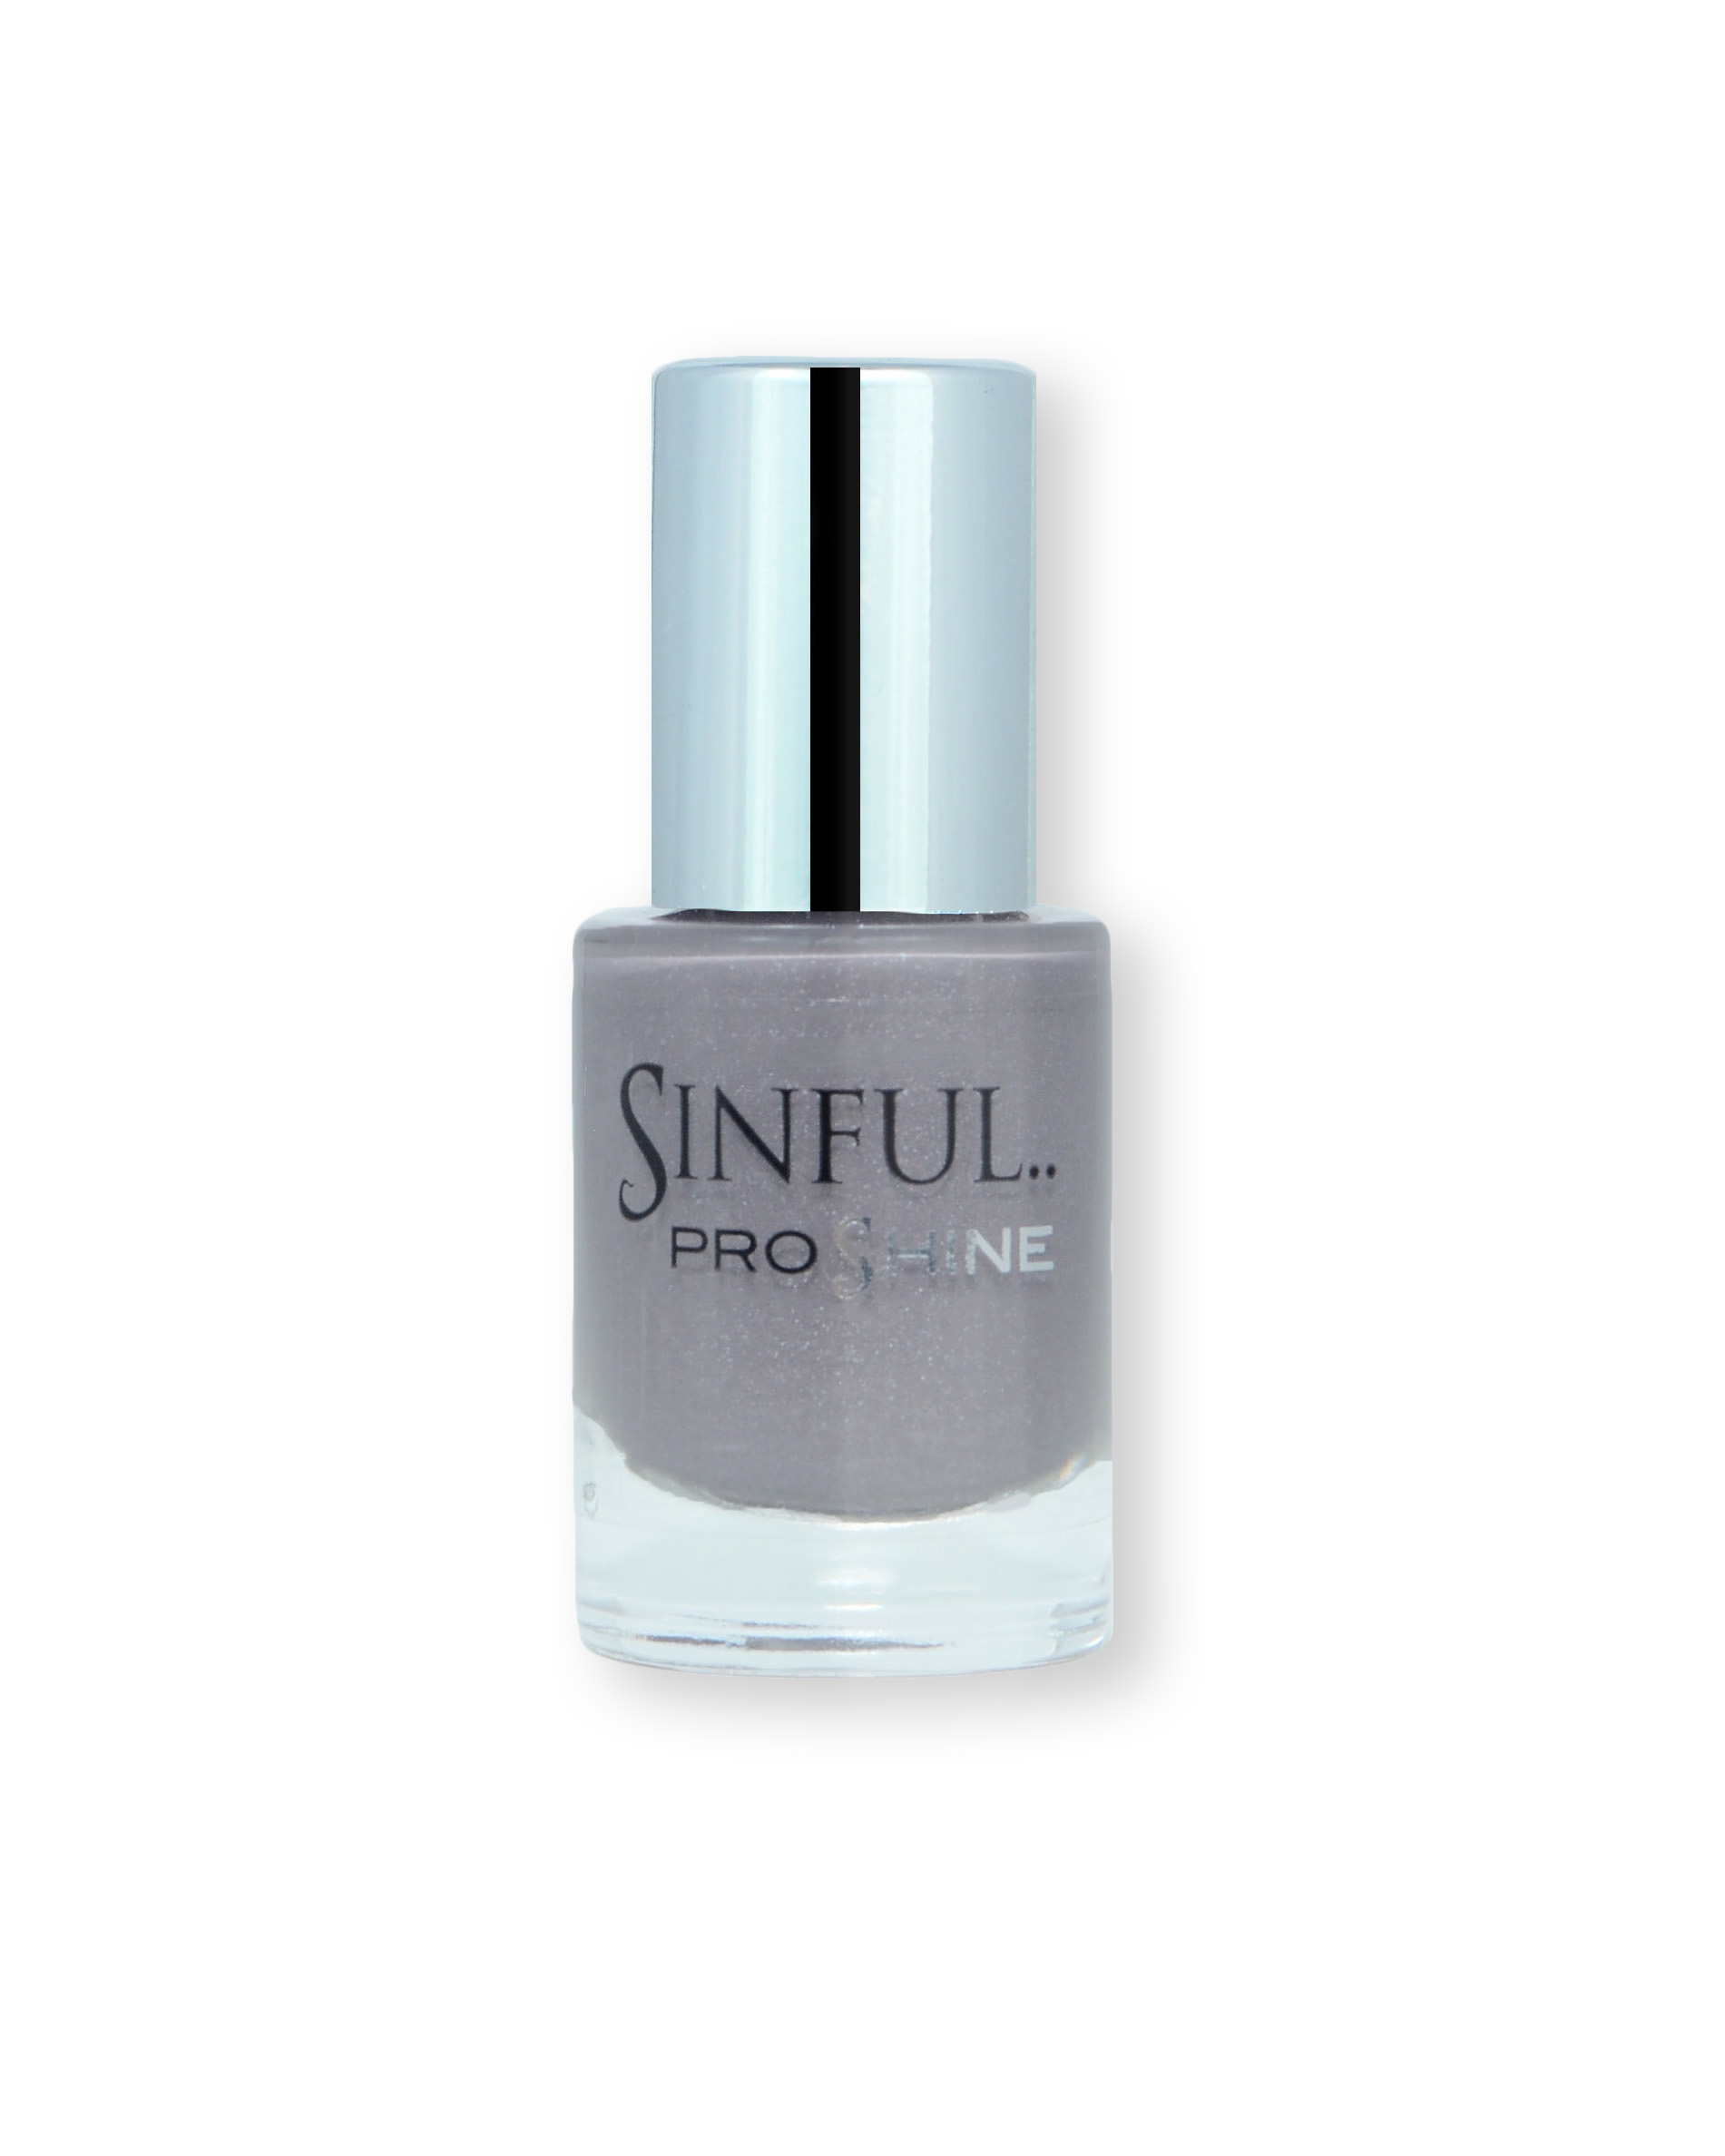 Sinful PROshine is a revolution into top spec imitation gel-like formula, easy application, full coverage and a sleek finish. Spoil yourself with the choice of 42 shades, expertly formulated with the finest grade of pigments. Fully Loaded: Stone with a subtle shimmer